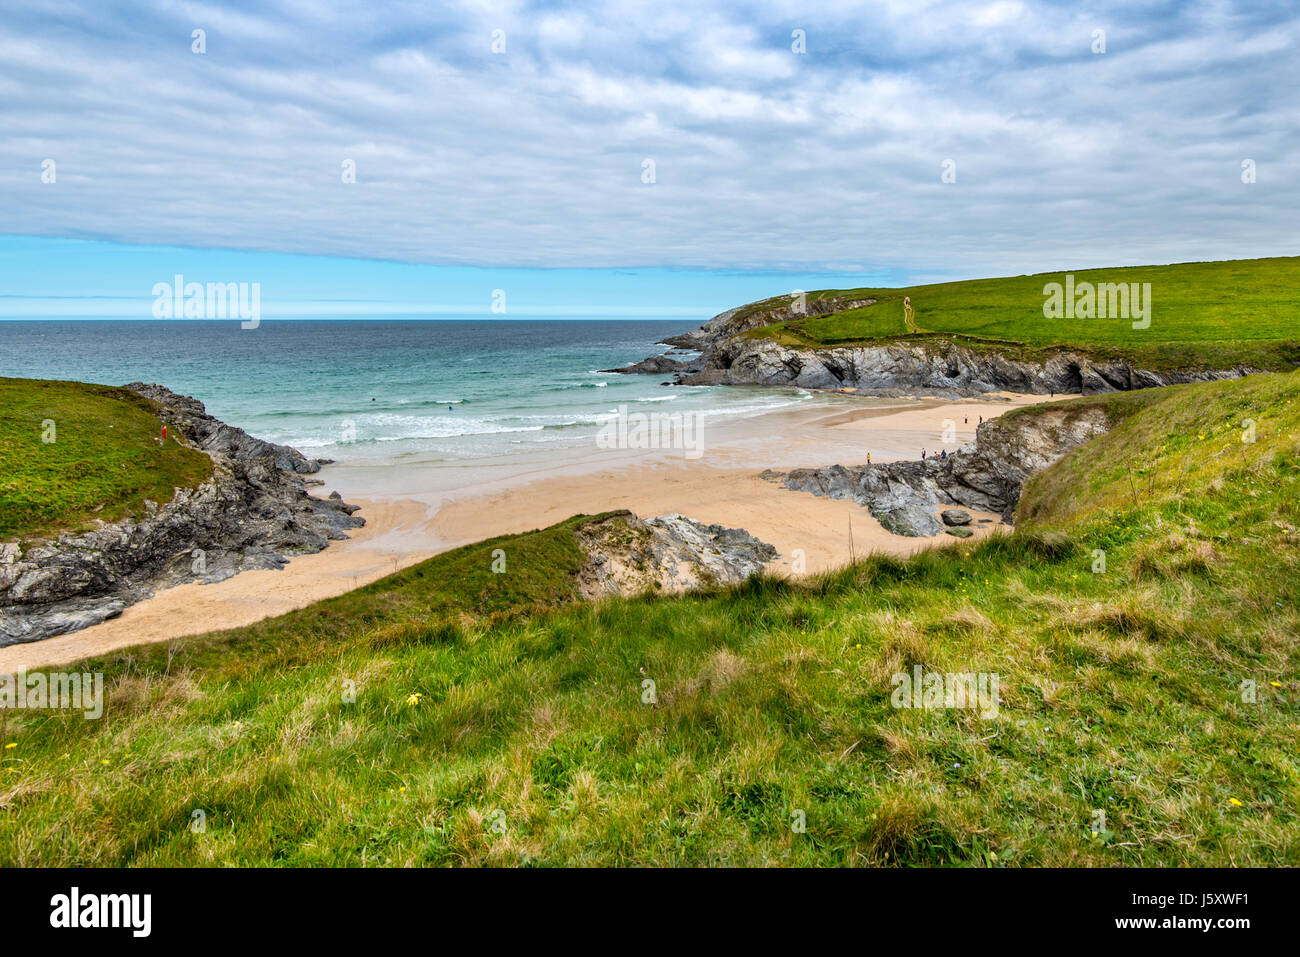 PORTH JOKE, NEWQUAY, CORNWALL, UK - 22APR2017: Porth Joke is a quiet beach with no road access near Newquay, - Stock Image